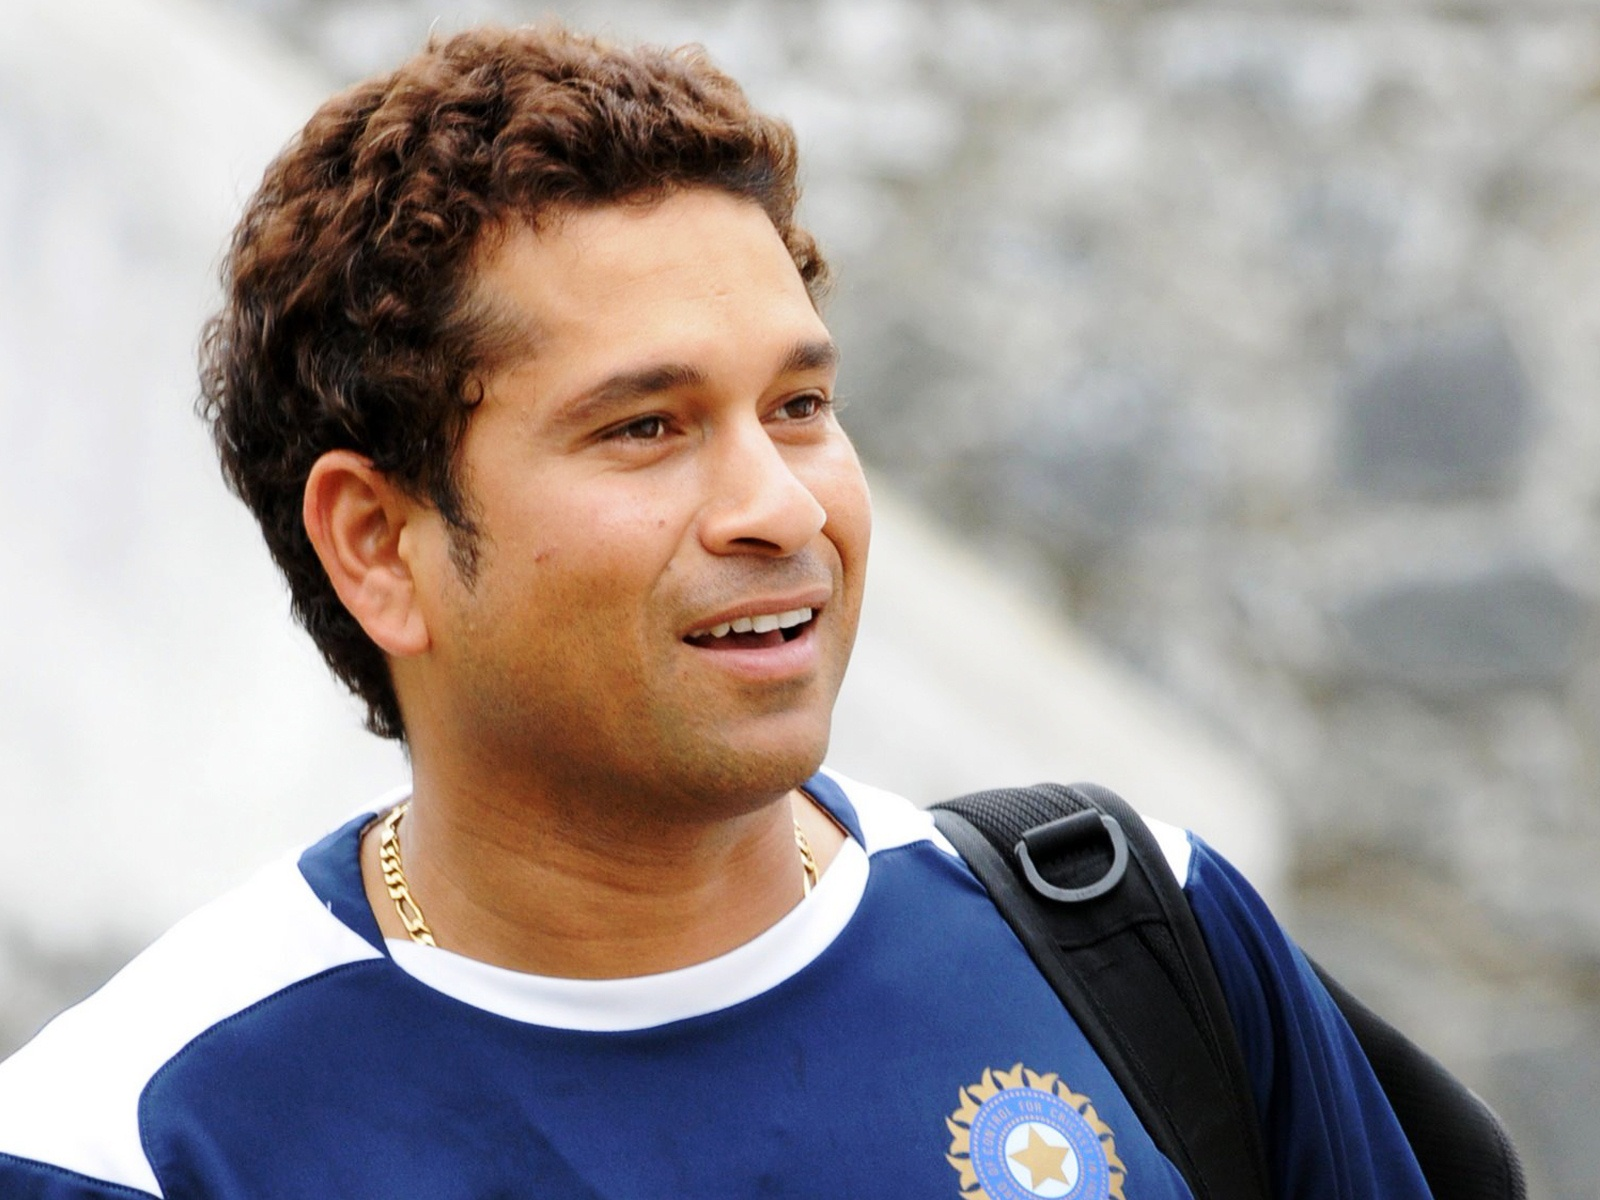 sachin tendulkar wallpaper and background image | 1600x1200 | id